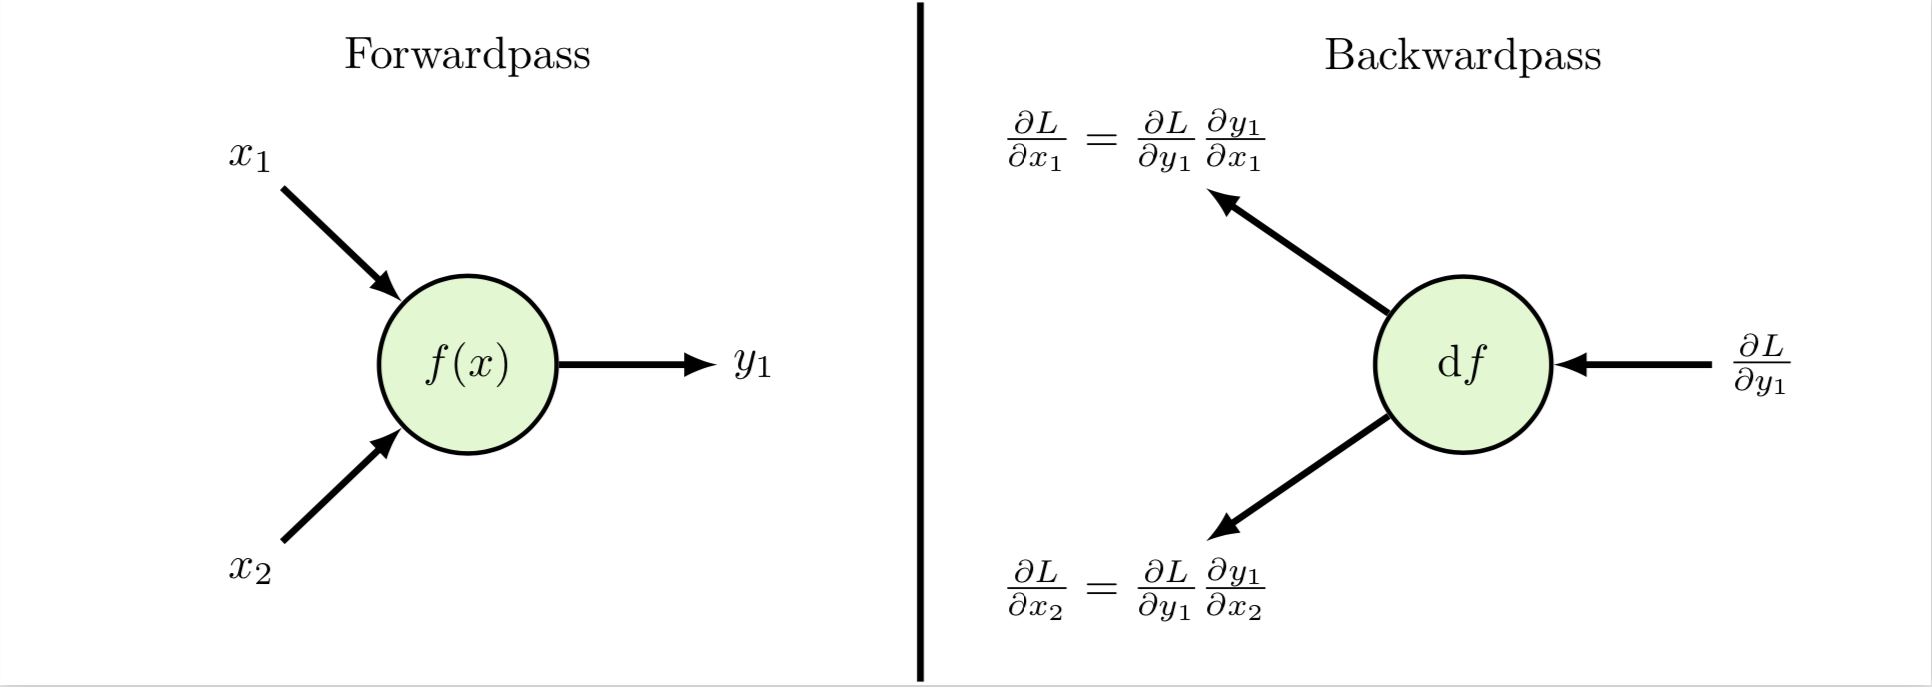 The chain rule applied to one single unit. Image source: Markus Völk.